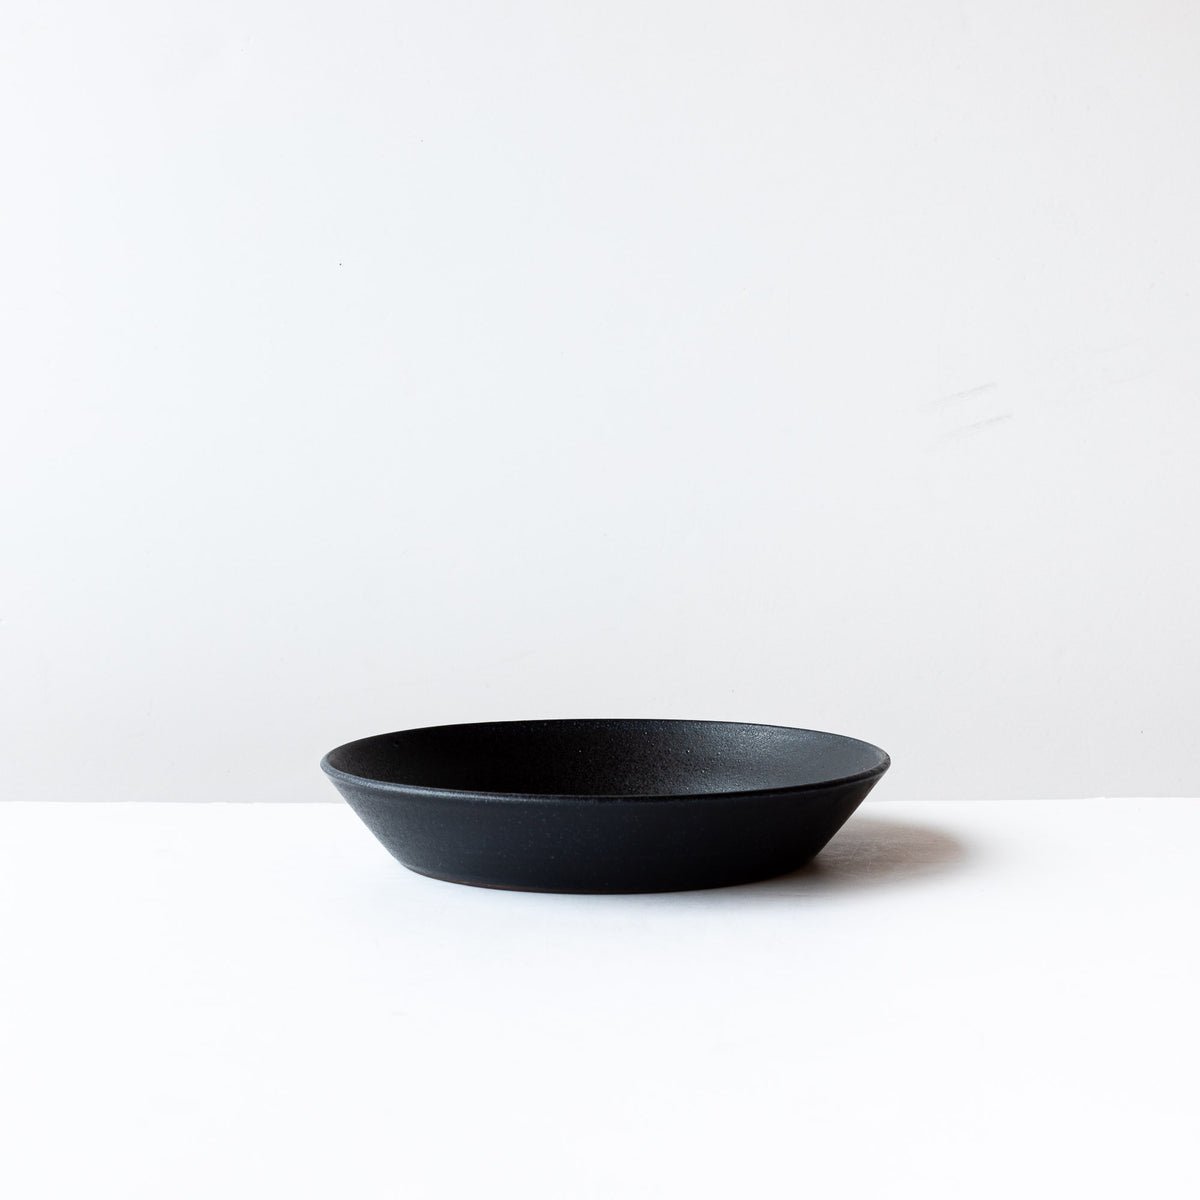 Side View - Black 9 Inch Handmade Stoneware Pie Plate / Pan Dish - Sold by Chic & Basta